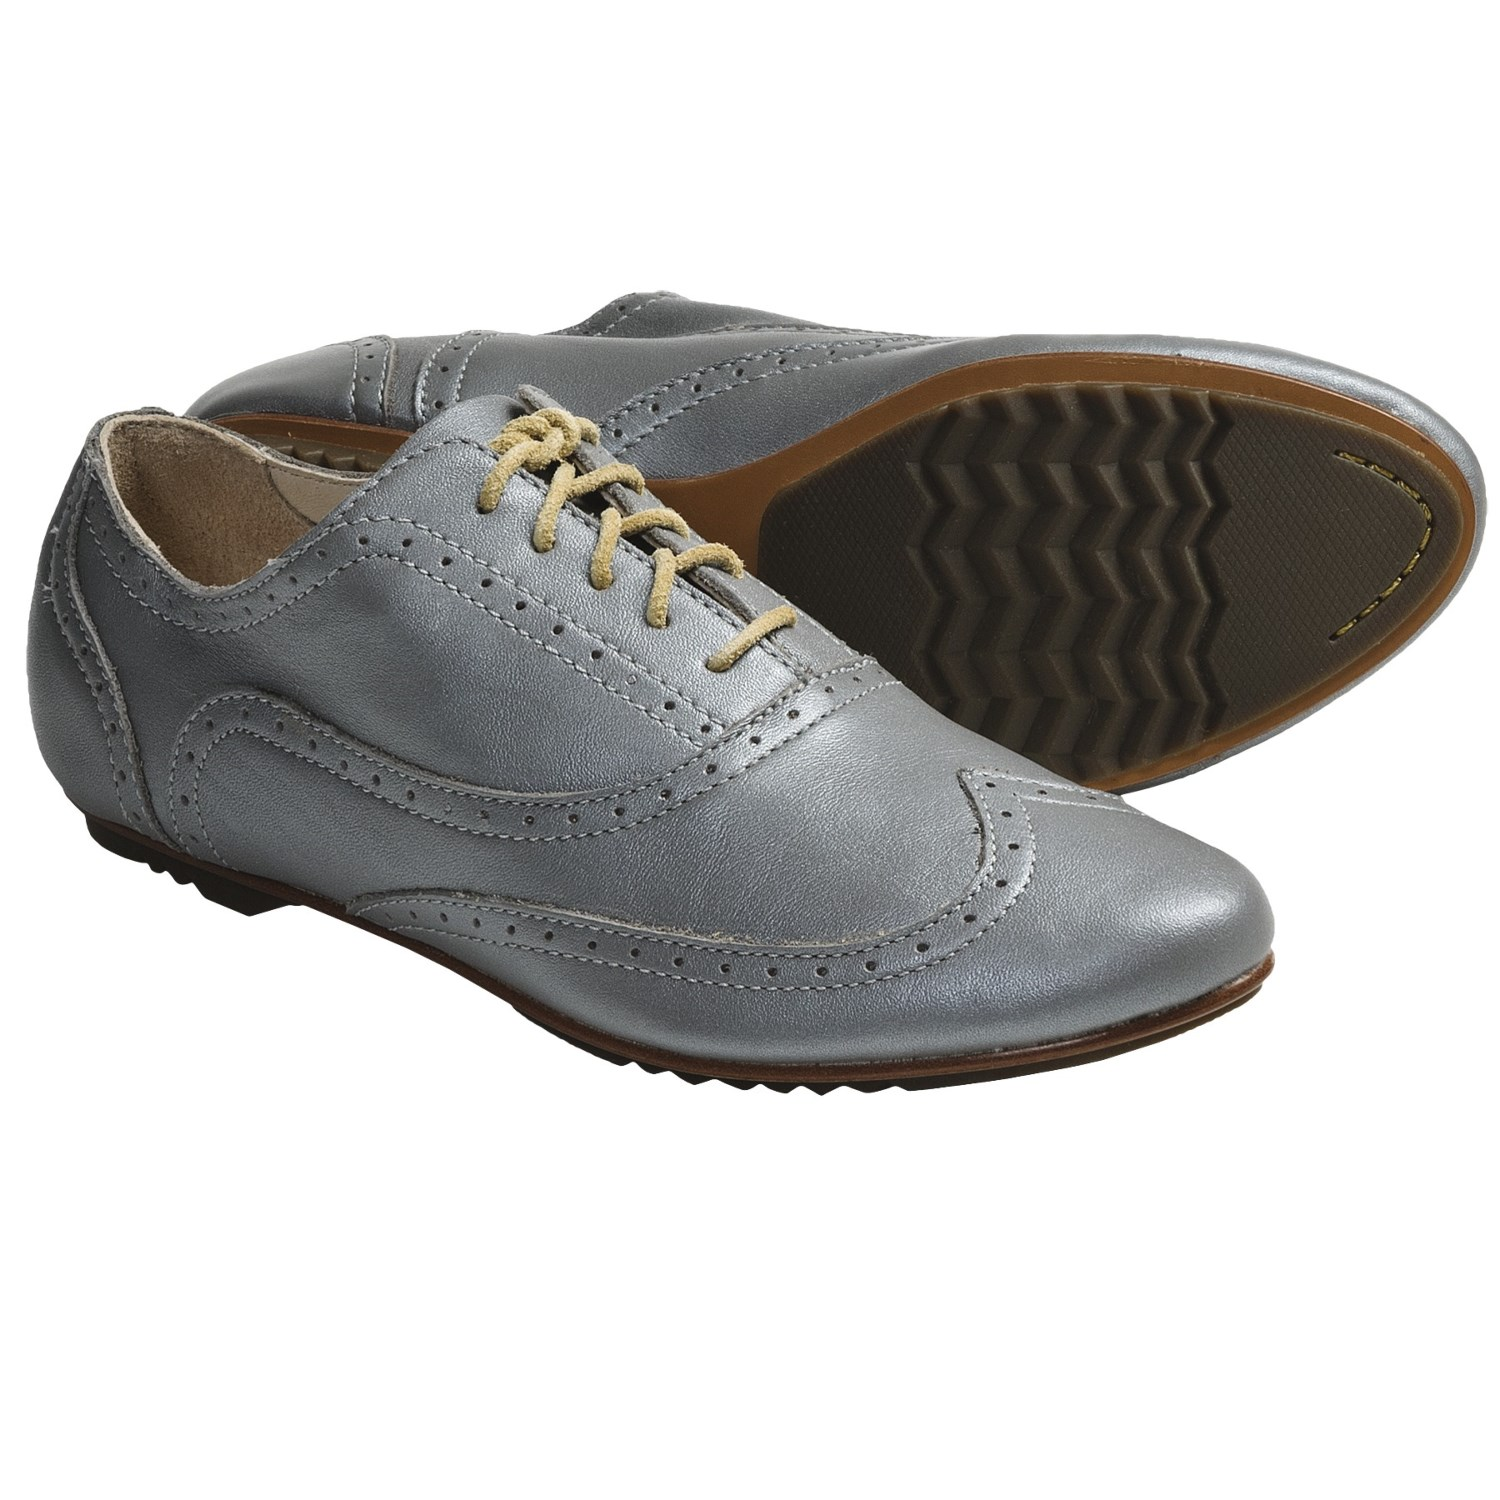 Casual Women's Leahter Shoes with Genuine Leather Upper and Tpr Outsole